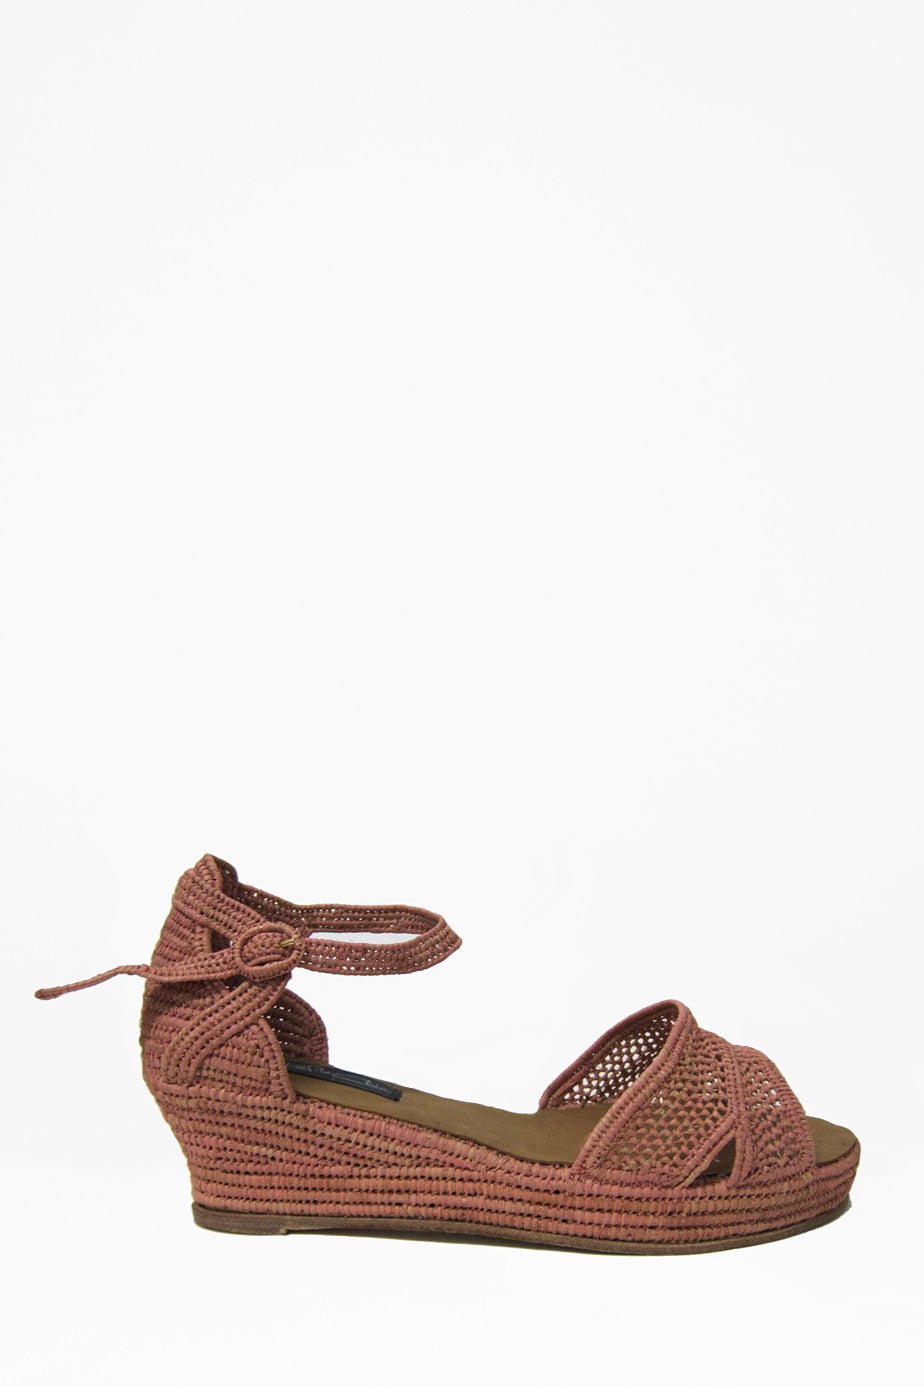 Buy Laila Wedge from RAFFIA CHIC at paya boutique